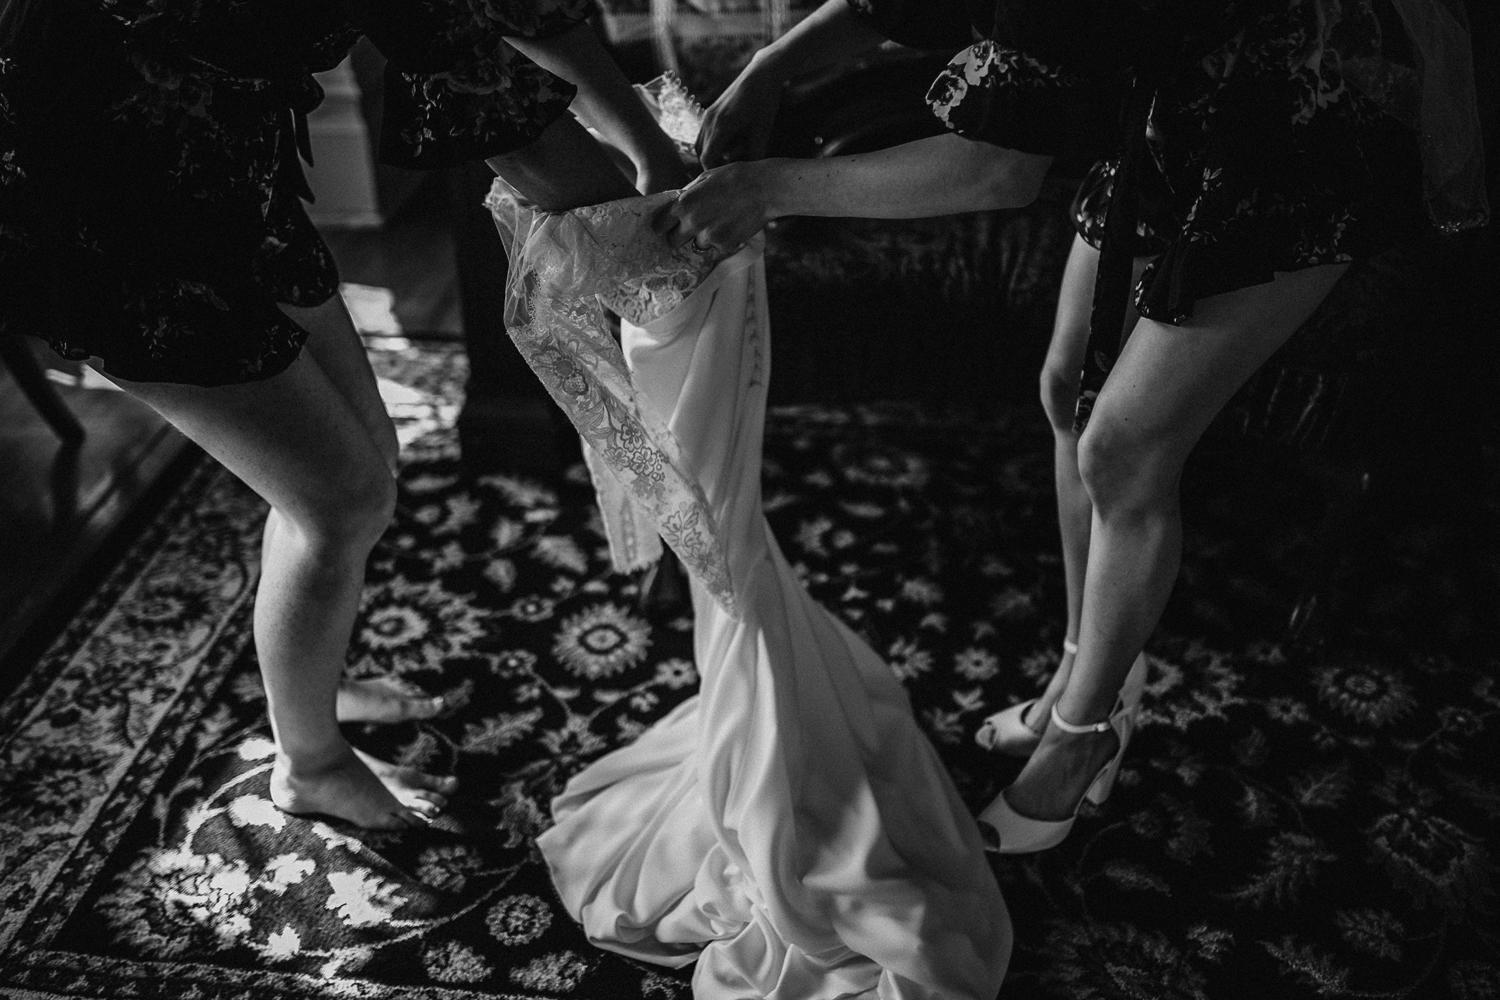 perth manor wedding - kerry ford photography-021.jpg